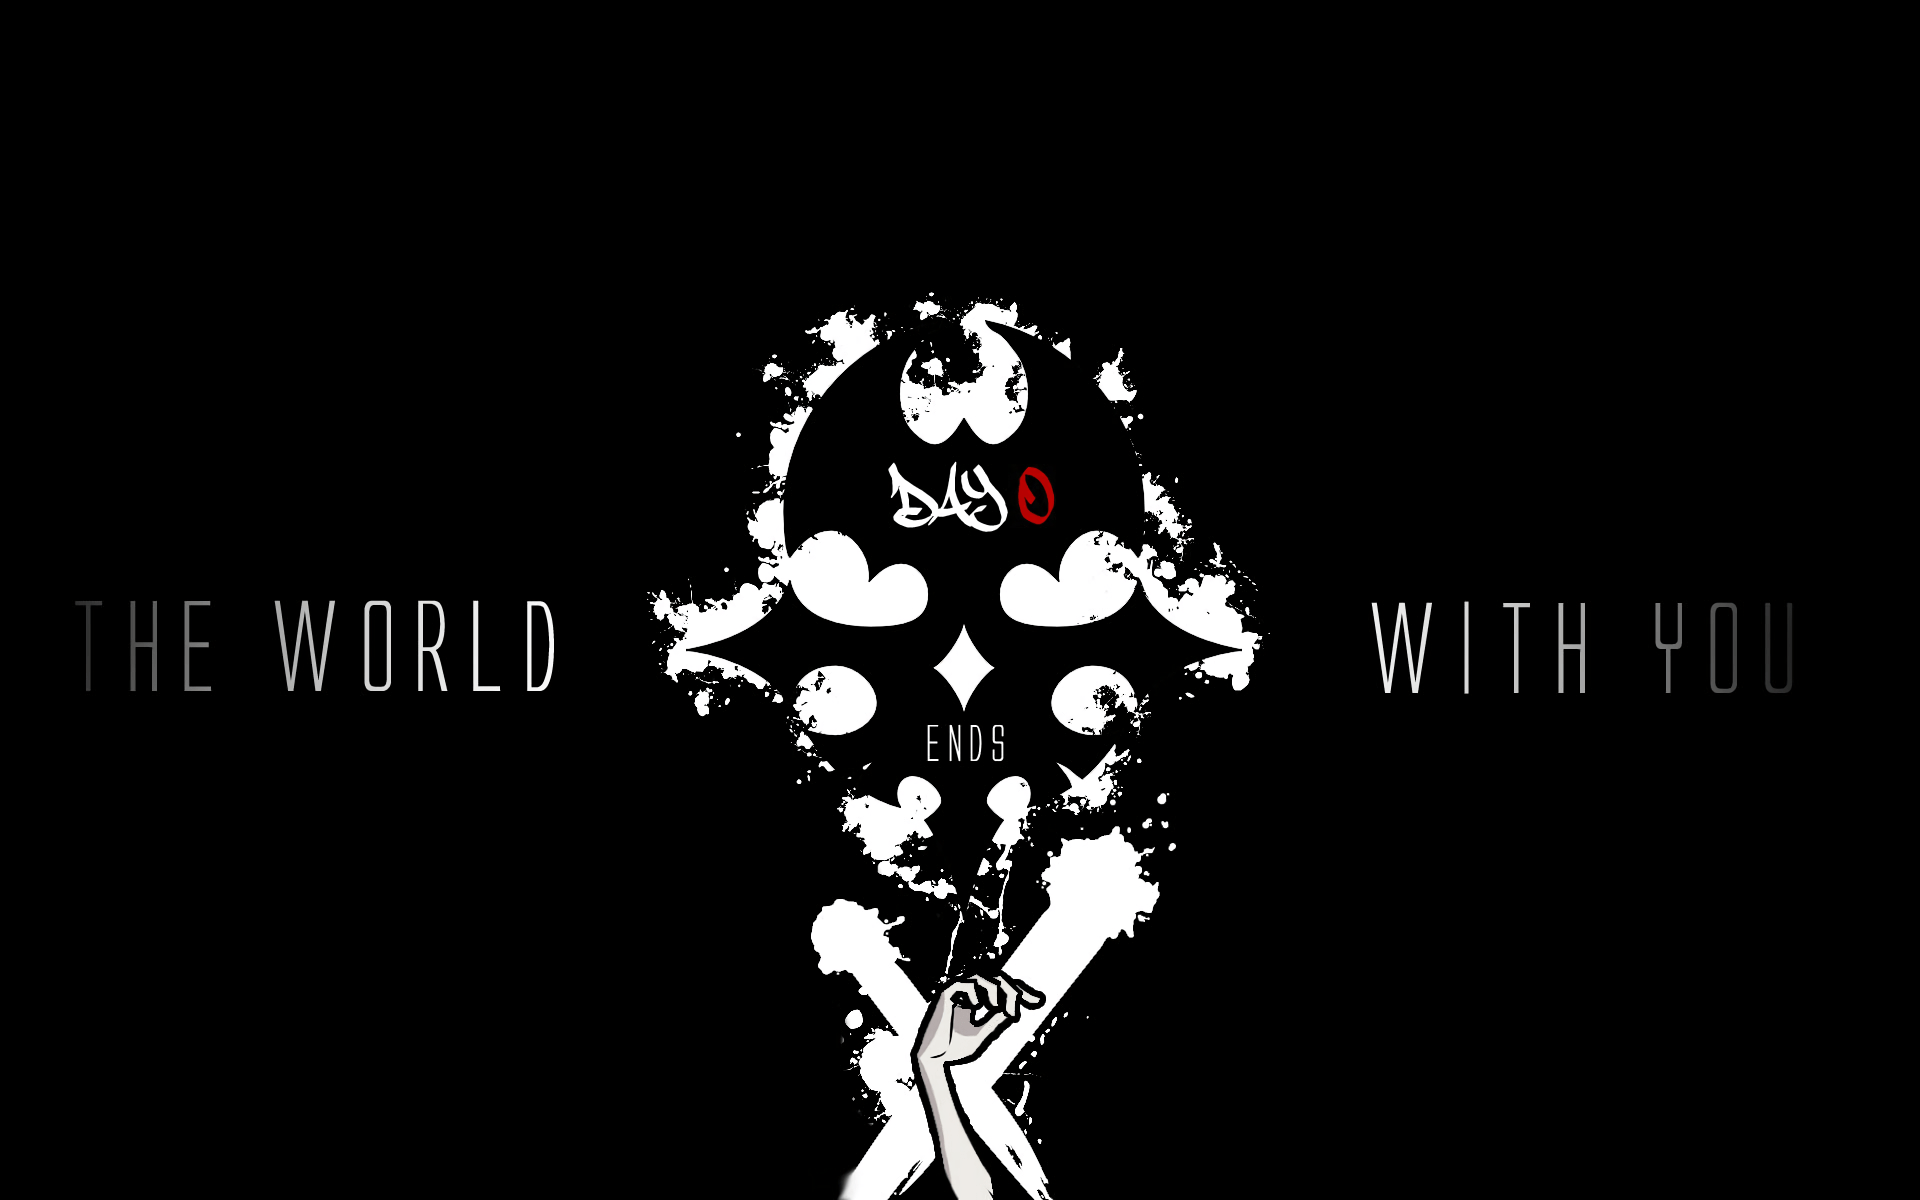 The World Ends With You Iphone Wallpaper The World Ends With You Hd Wallpaper Background Image